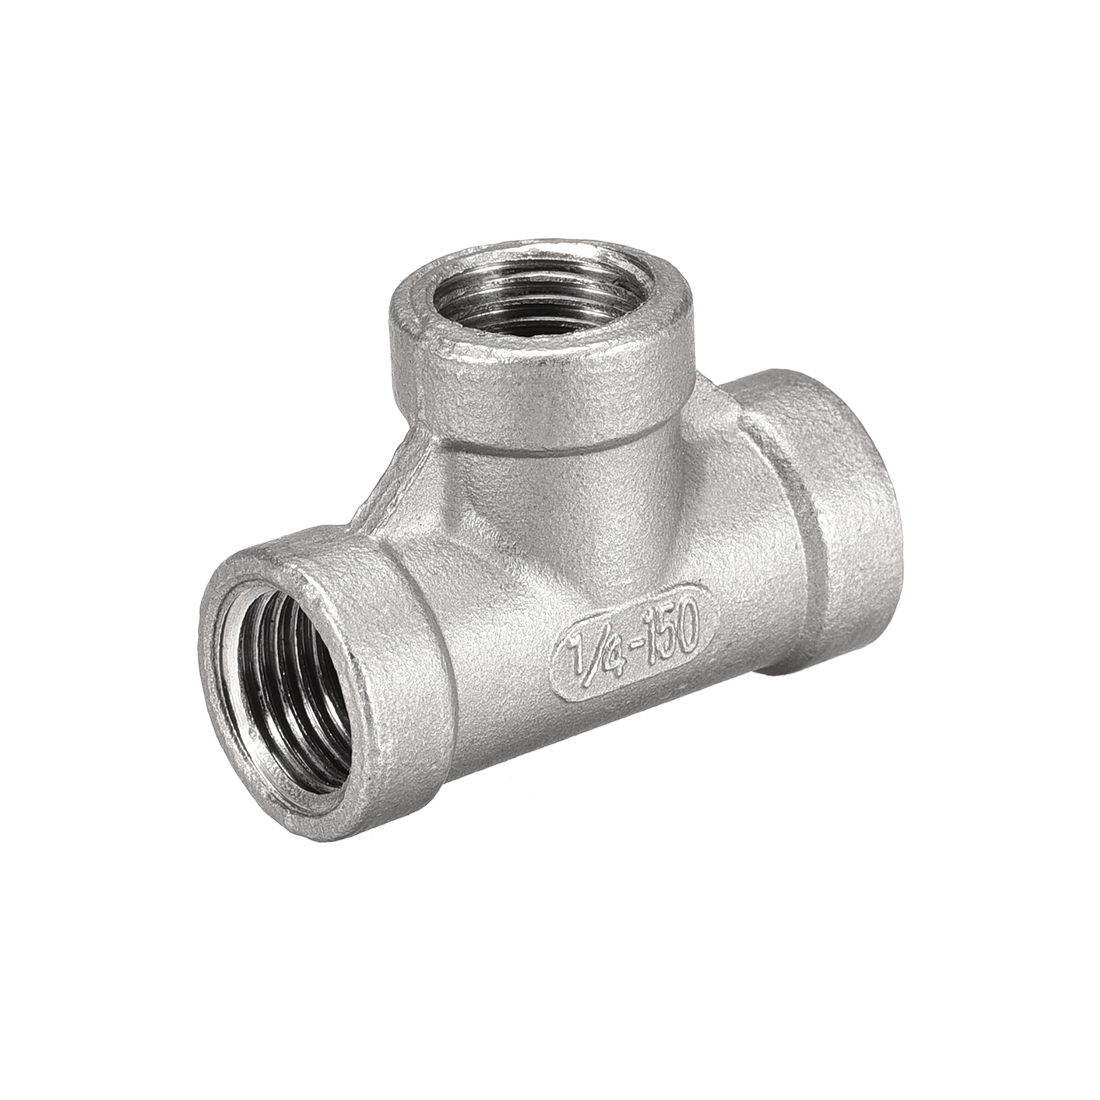 Stainless Steel 304 Cast Pipe Fitting 1/4BSPT Female Tee Shaped Connector